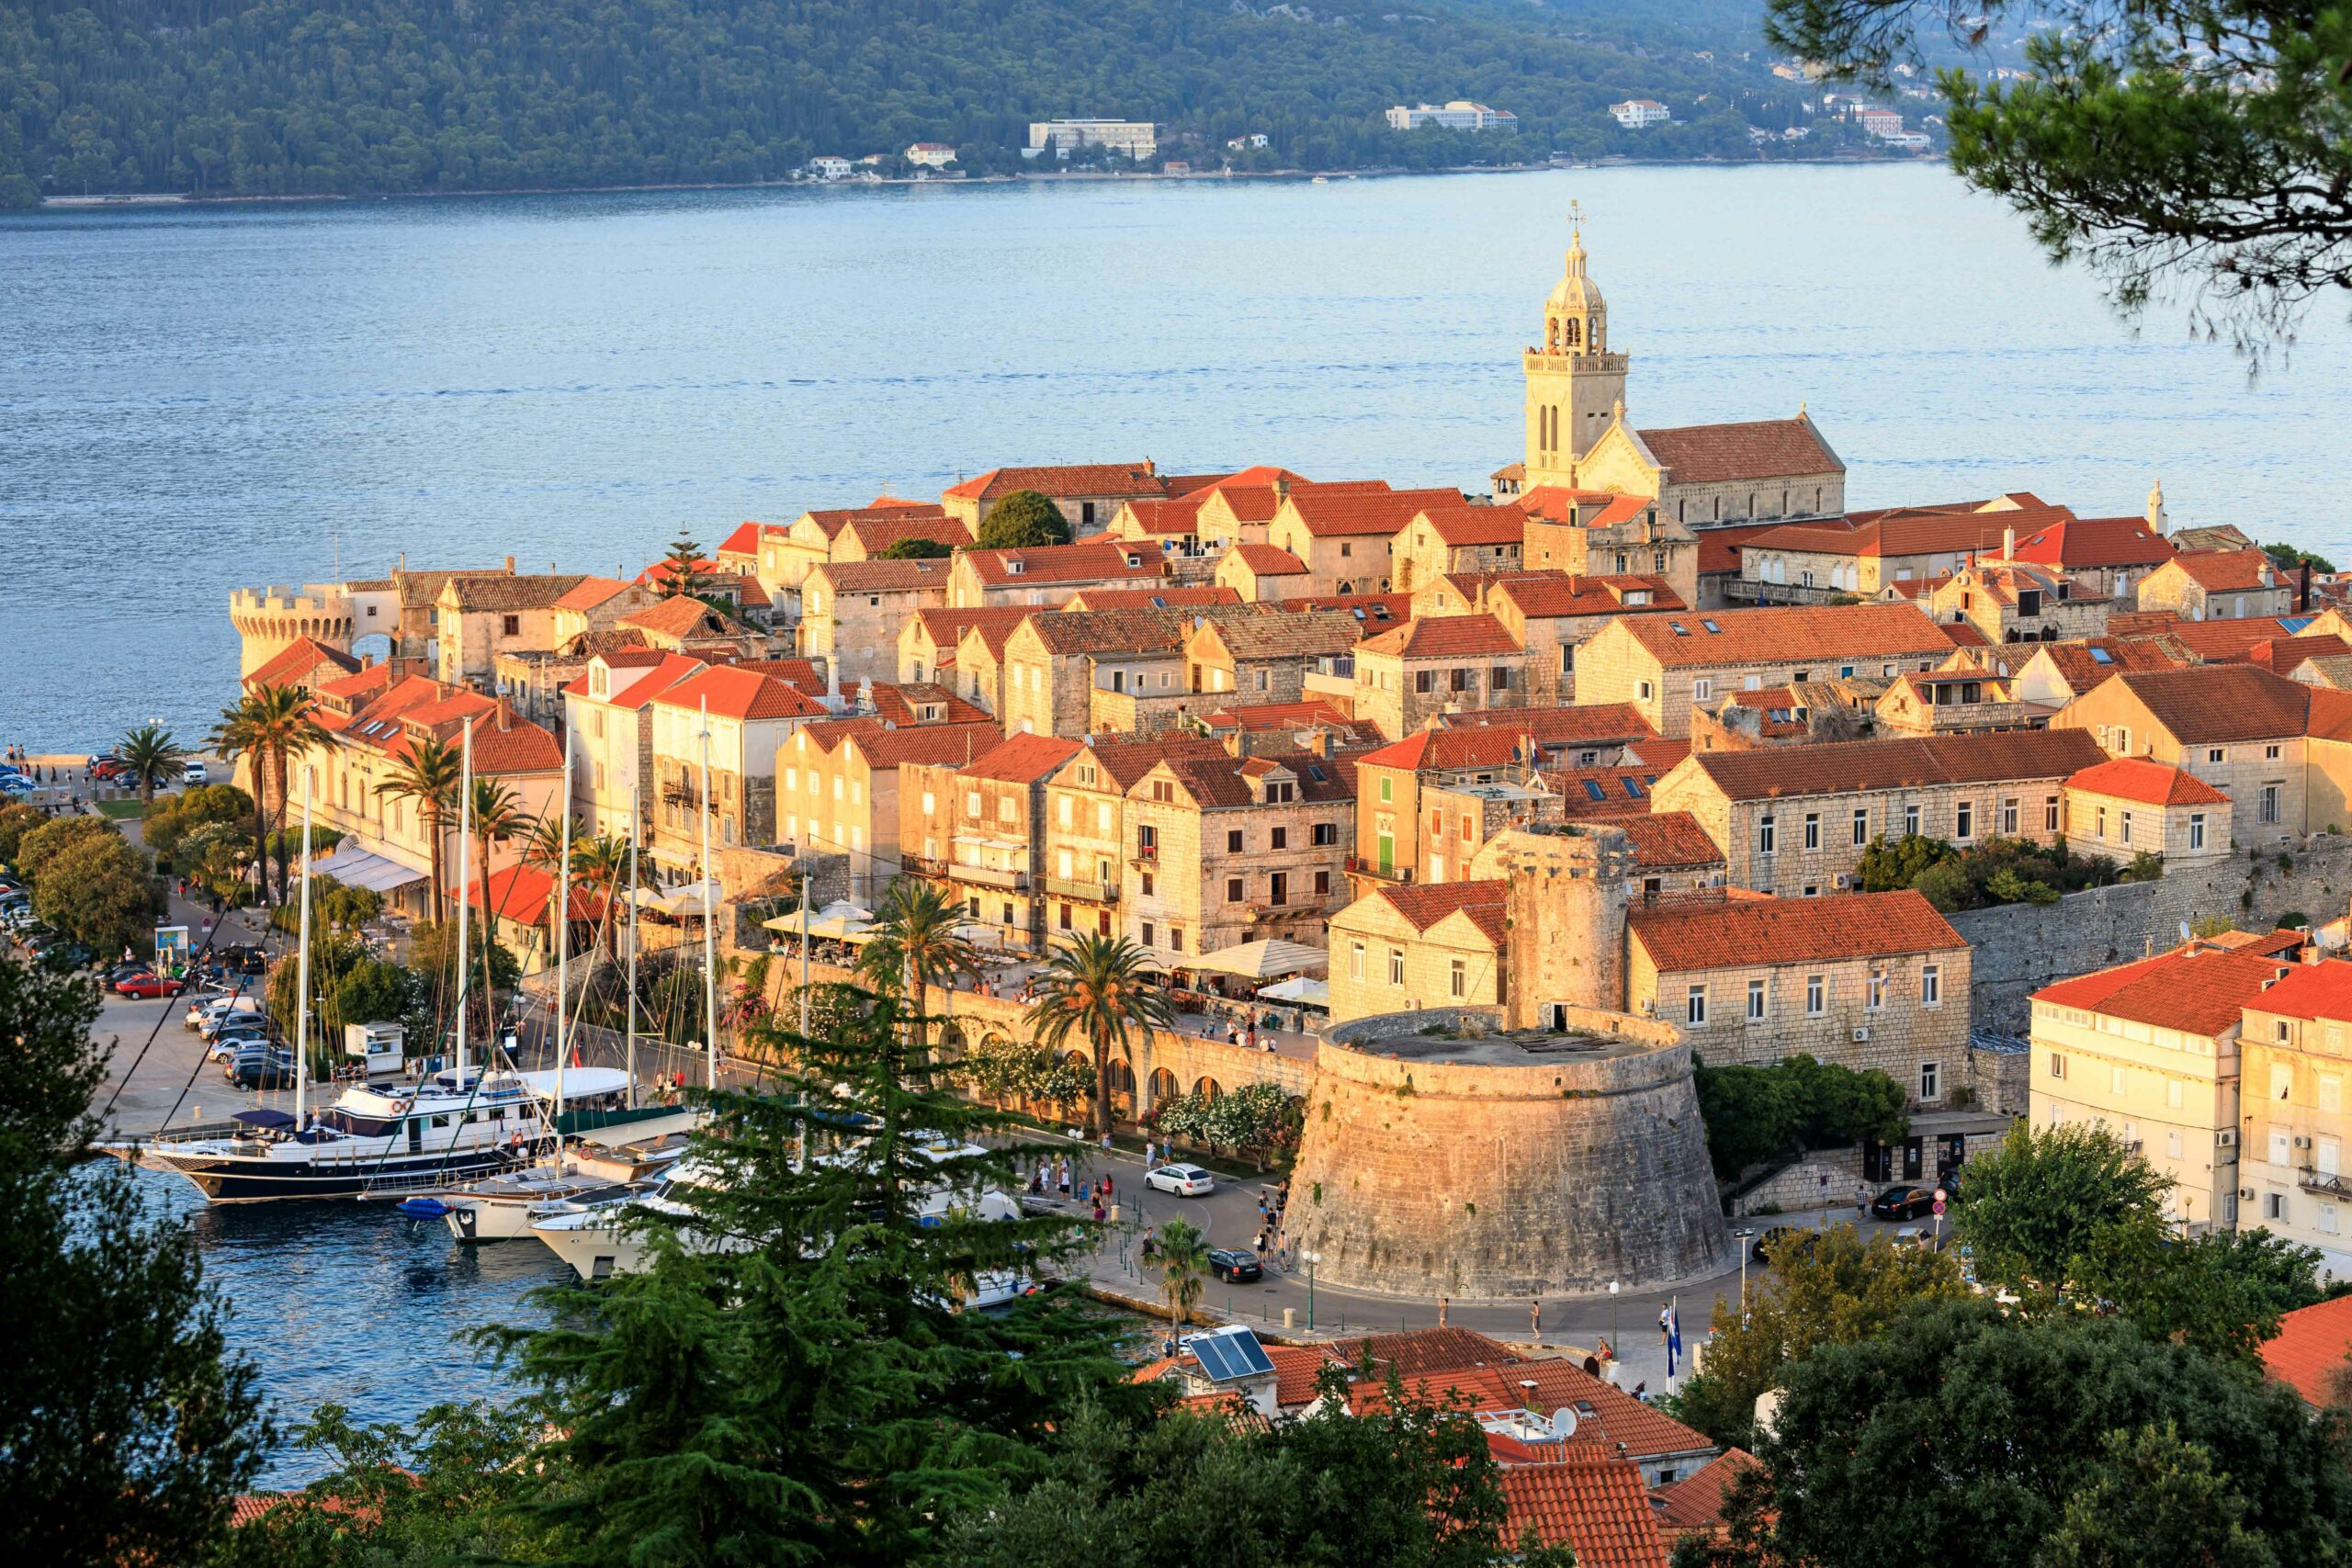 Sunset over the old town of Korcula, Croatia